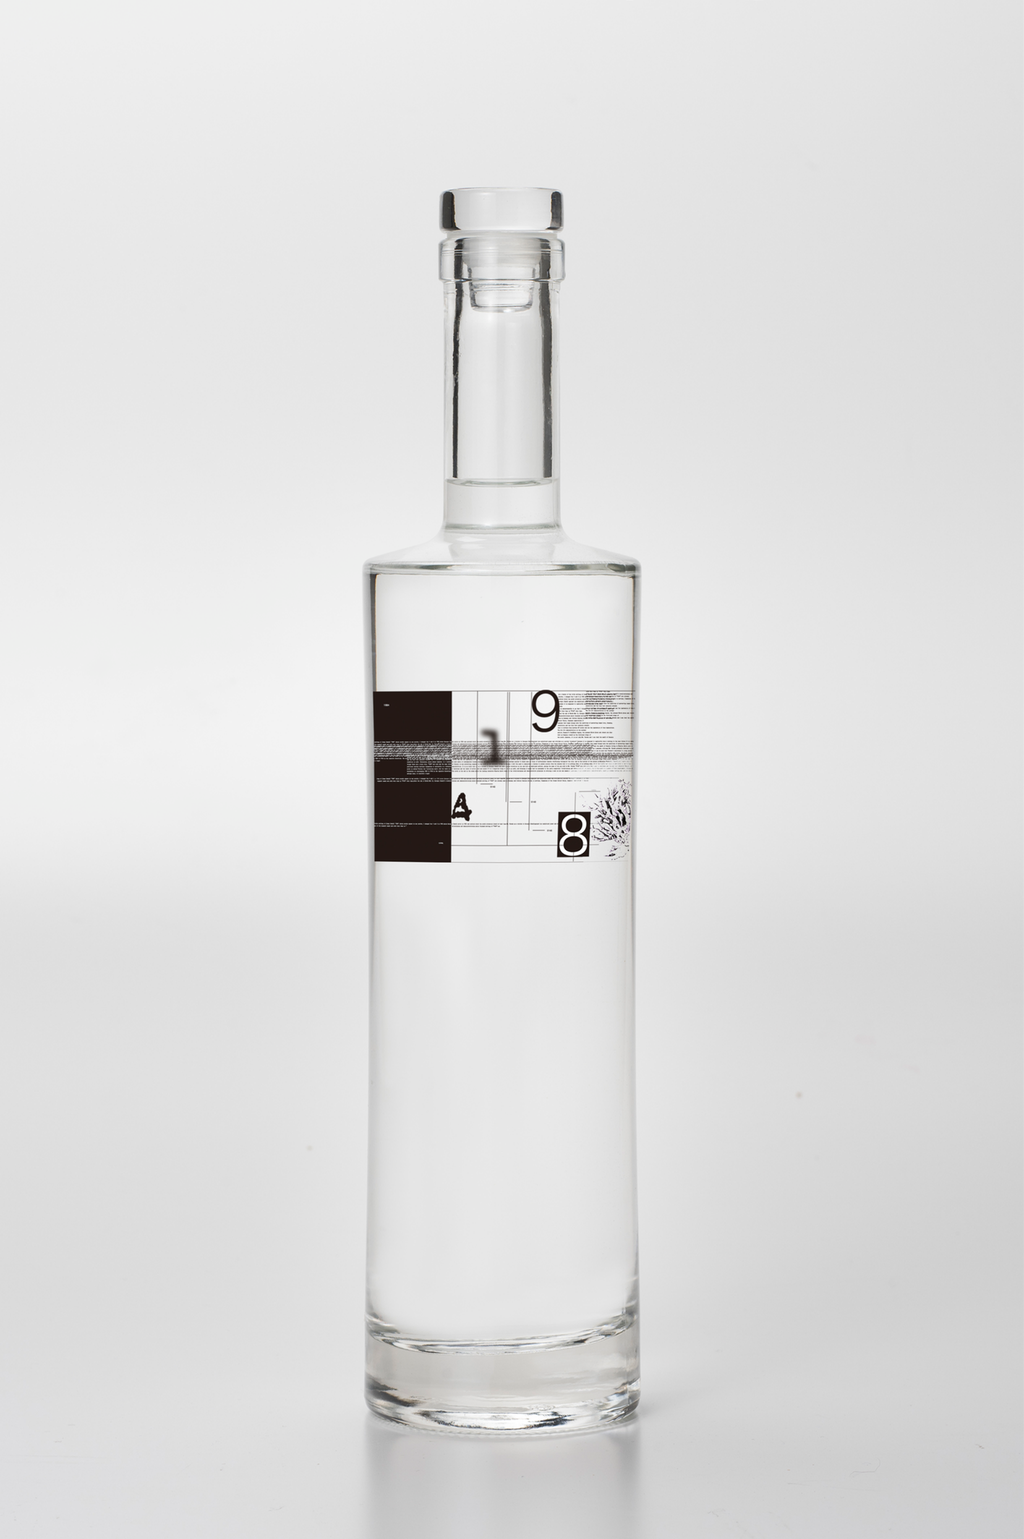 9148 #0396 Sakura Craft Gin